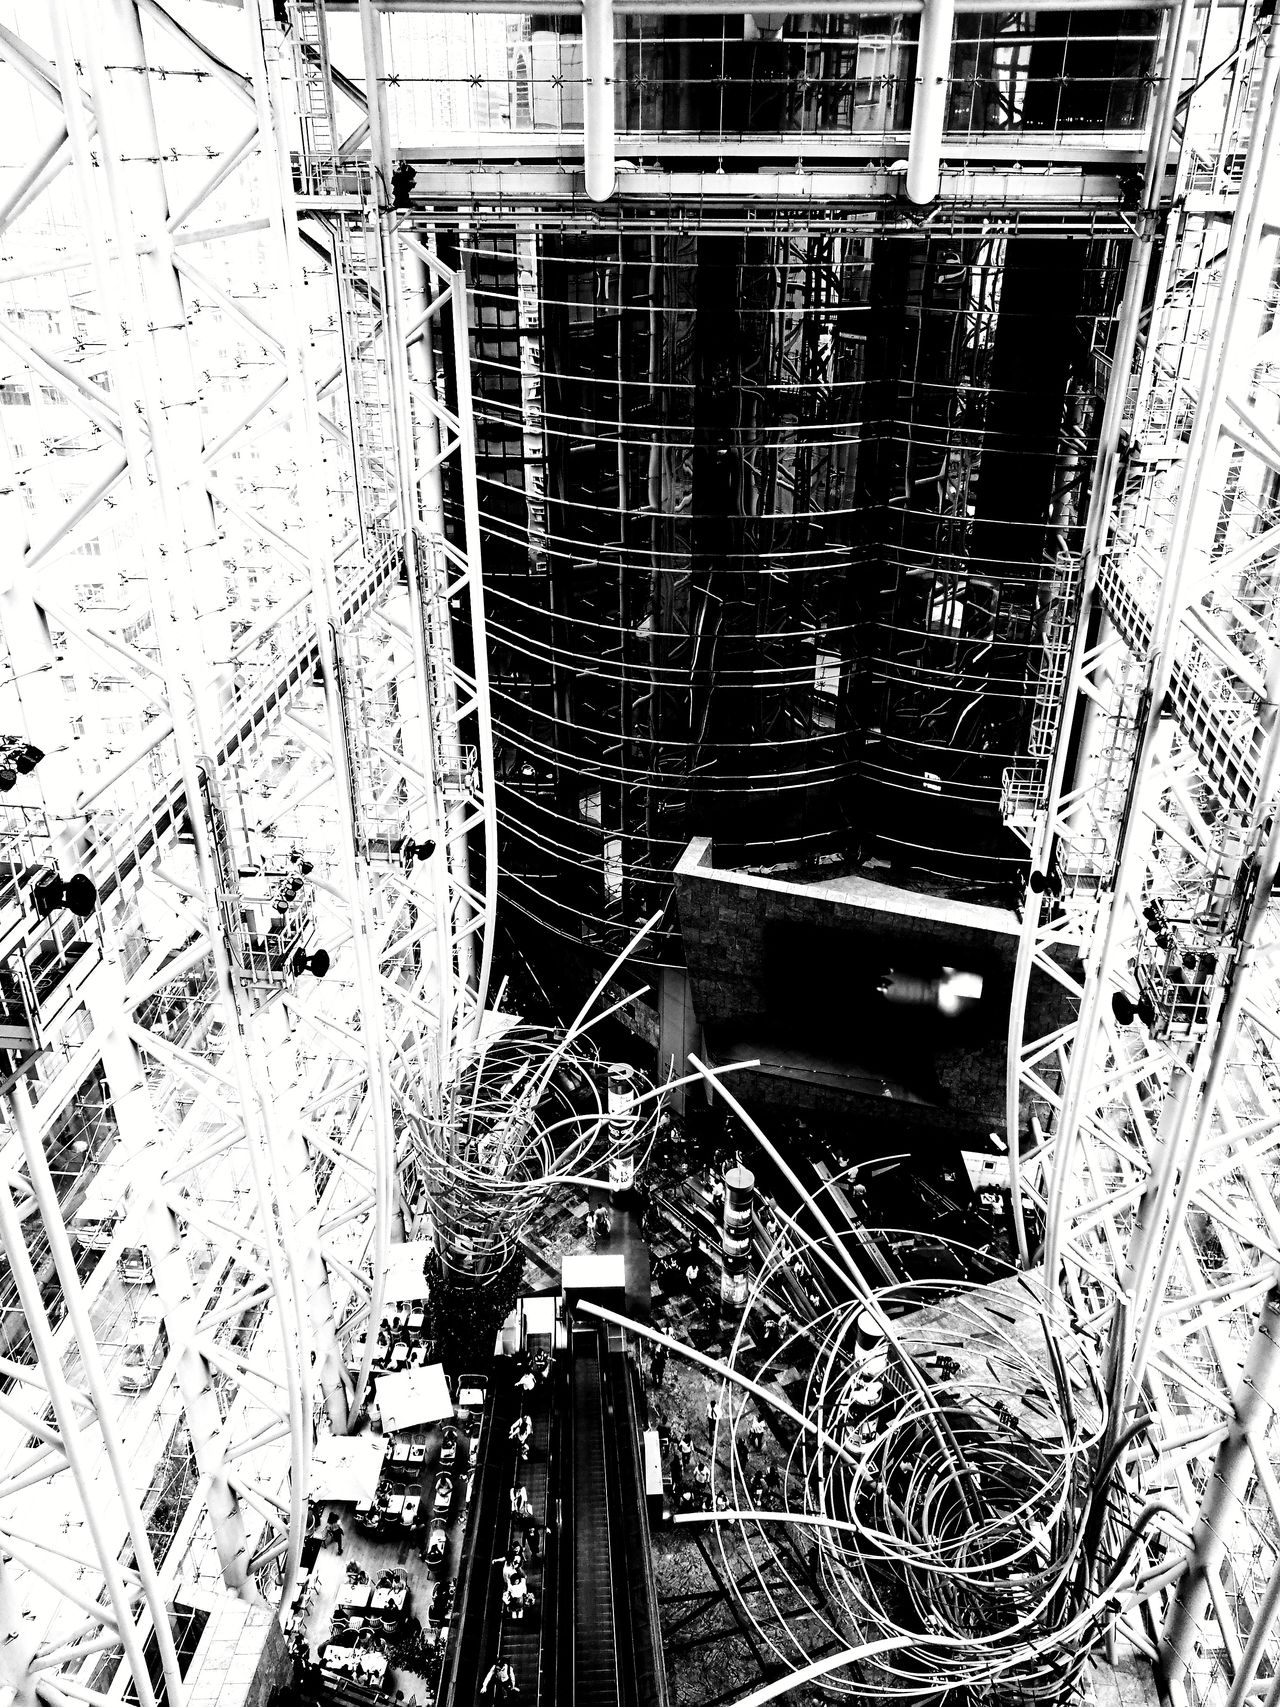 Black And White Architecture Backgrounds Indoors  Close-up Travel Destinations Built Structure Vacation Destination Shopping ♡ Full Frame Day No People HongKong Langham_Place View From The Top The Street Photographer - 2017 EyeEm Awards The Architect - 2017 EyeEm Awards